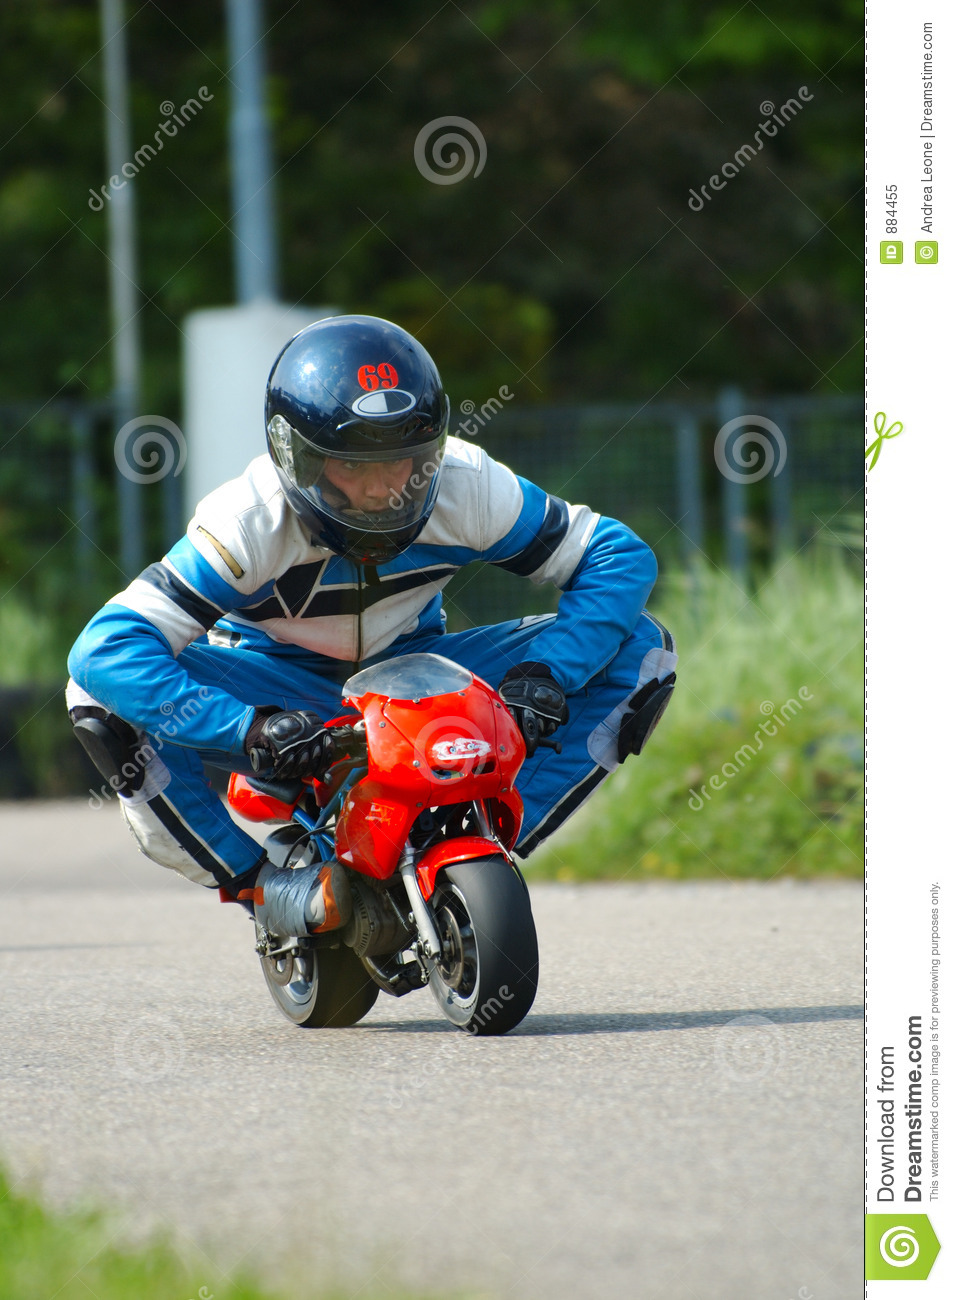 Minibike Racing Royalty Free Stock Photo - Image: 884455